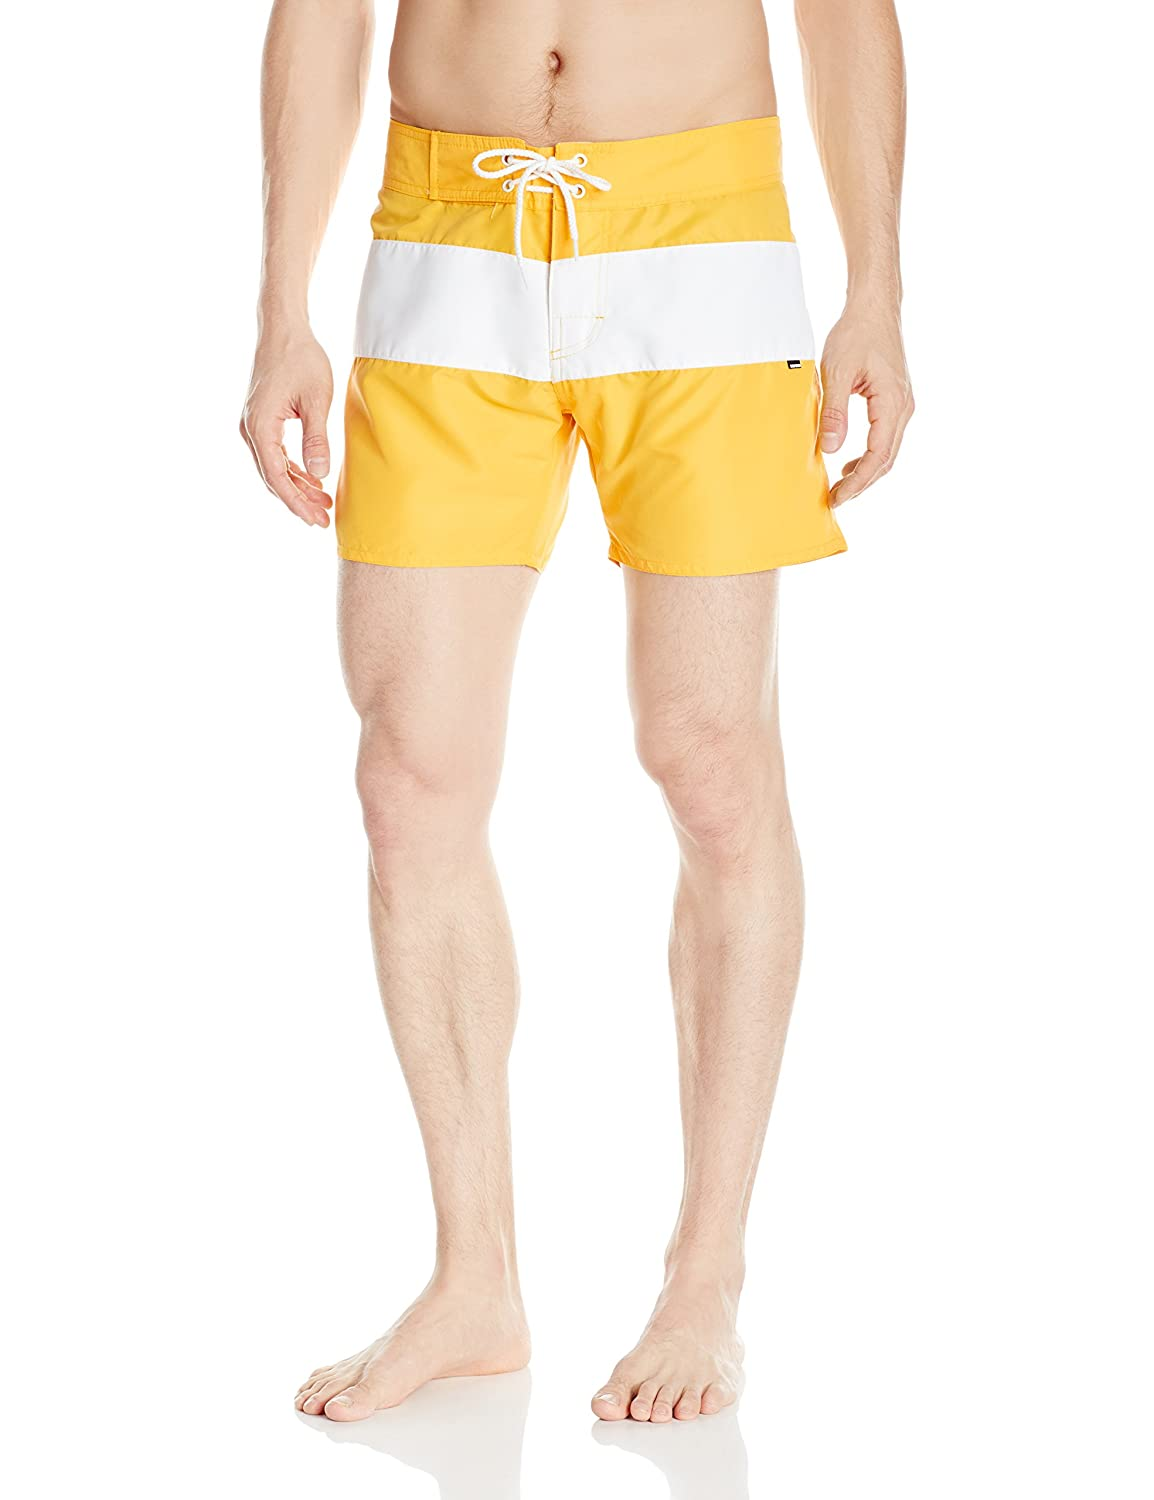 252a7bec37 Sauvage Men's Fixed Waist Positano Italian Striped Swim Trunk | Amazon.com